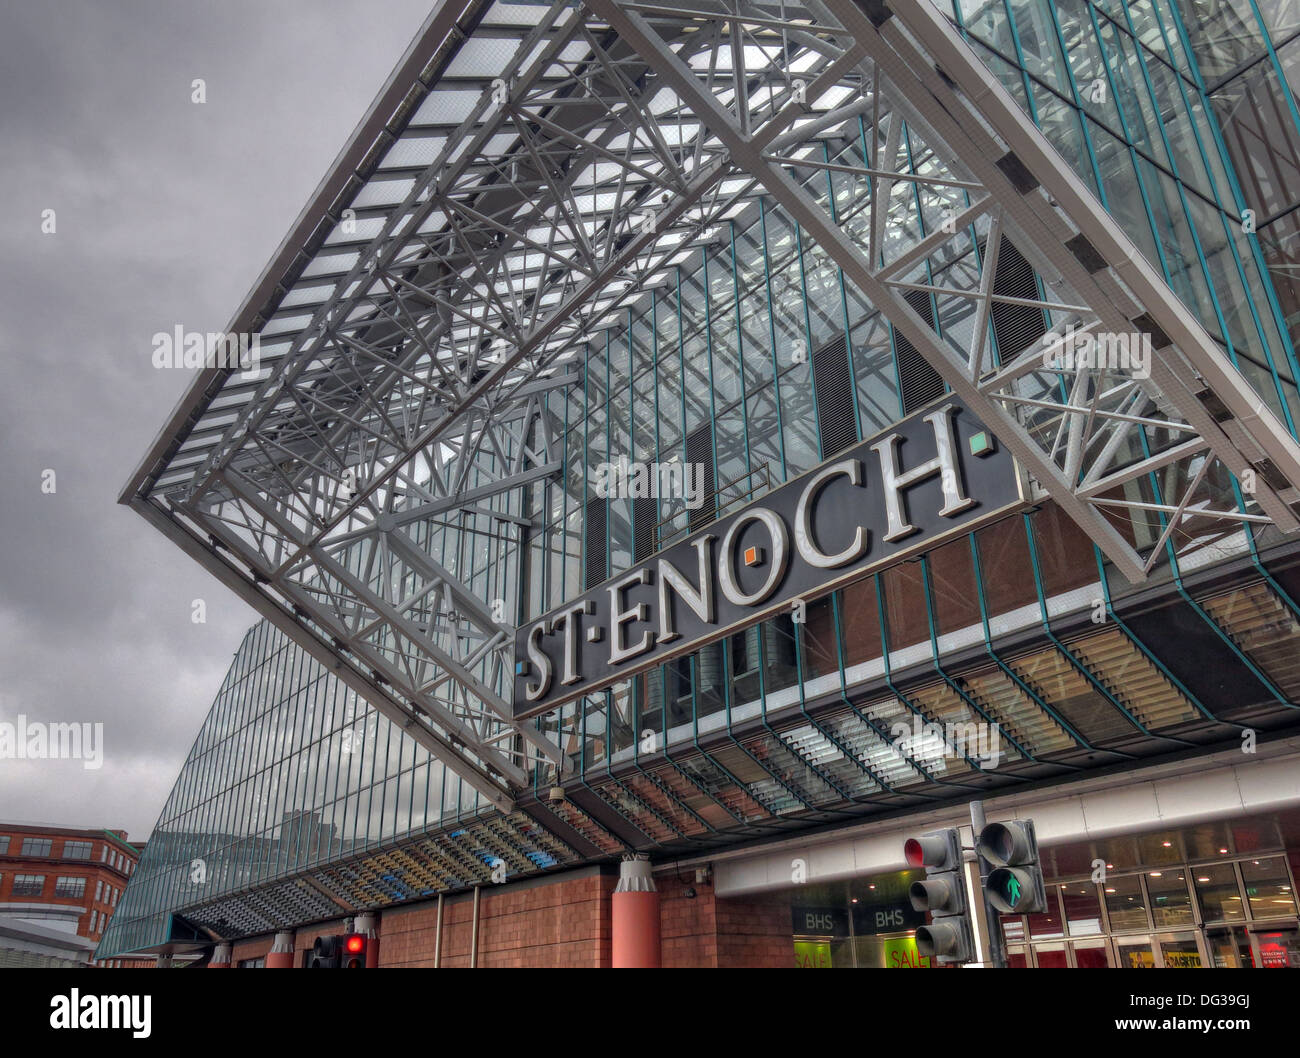 55 St Enoch Square,Glasgow,Scotland,UK,G1,4EQ,G14EQ,saint,shop,shops,mall,GMW,Architects,Sir,Robert,McAlpine,station,Argyle,Street,architectural,critics,architecture,glass,roof,eco,eco-friendly,ecofriendly,largest,glass-covered,enclosed,area,in,Europe,Greenhouse,Scott,Lithgow,Gotonysmith stenoch stenochs canopy entrance conservatory,Buy Pictures of,Buy Images Of